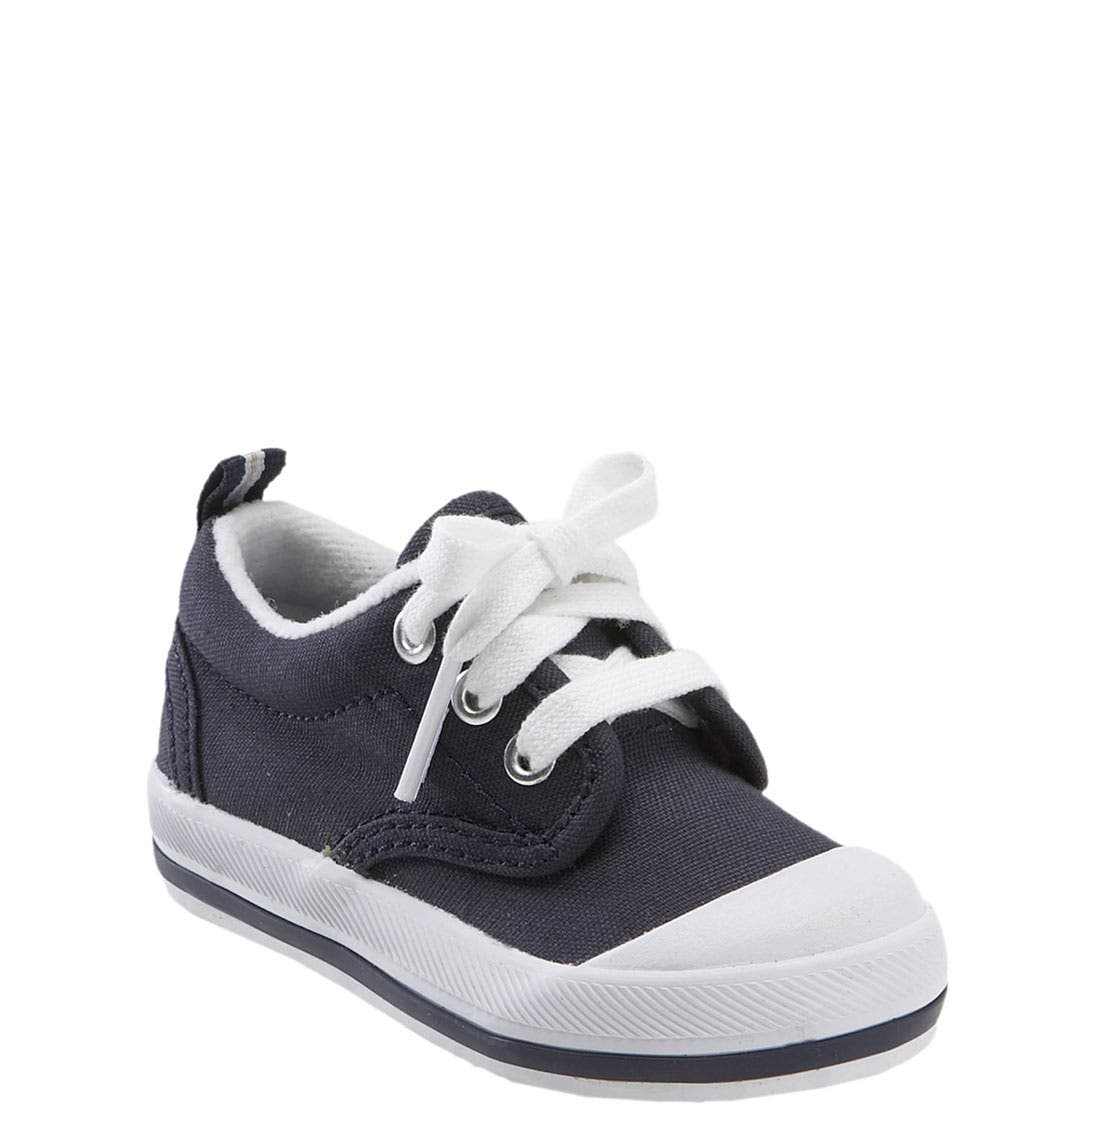 KEDS<SUP>®</SUP>, 'Graham' Lace-Up Sneaker, Main thumbnail 1, color, NAVY CANVAS